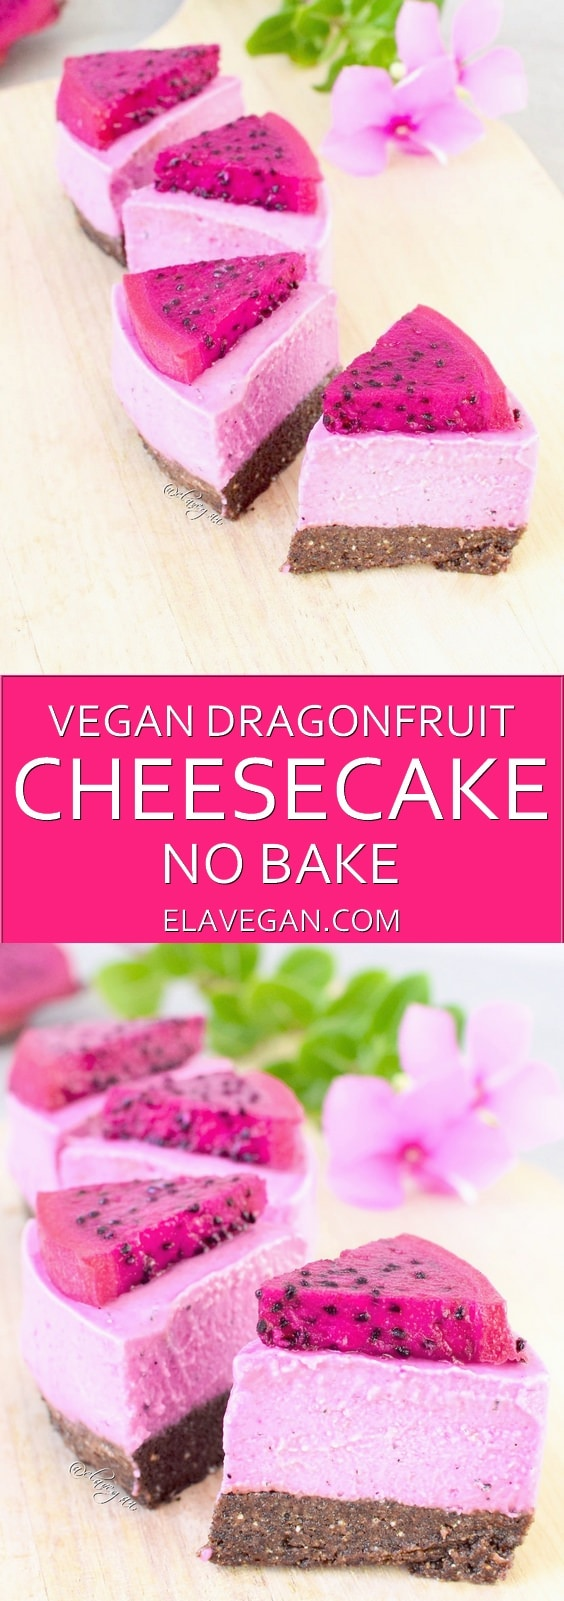 raw vegan cheesecake recipe which is gluten free, refined sugar free and plantbased